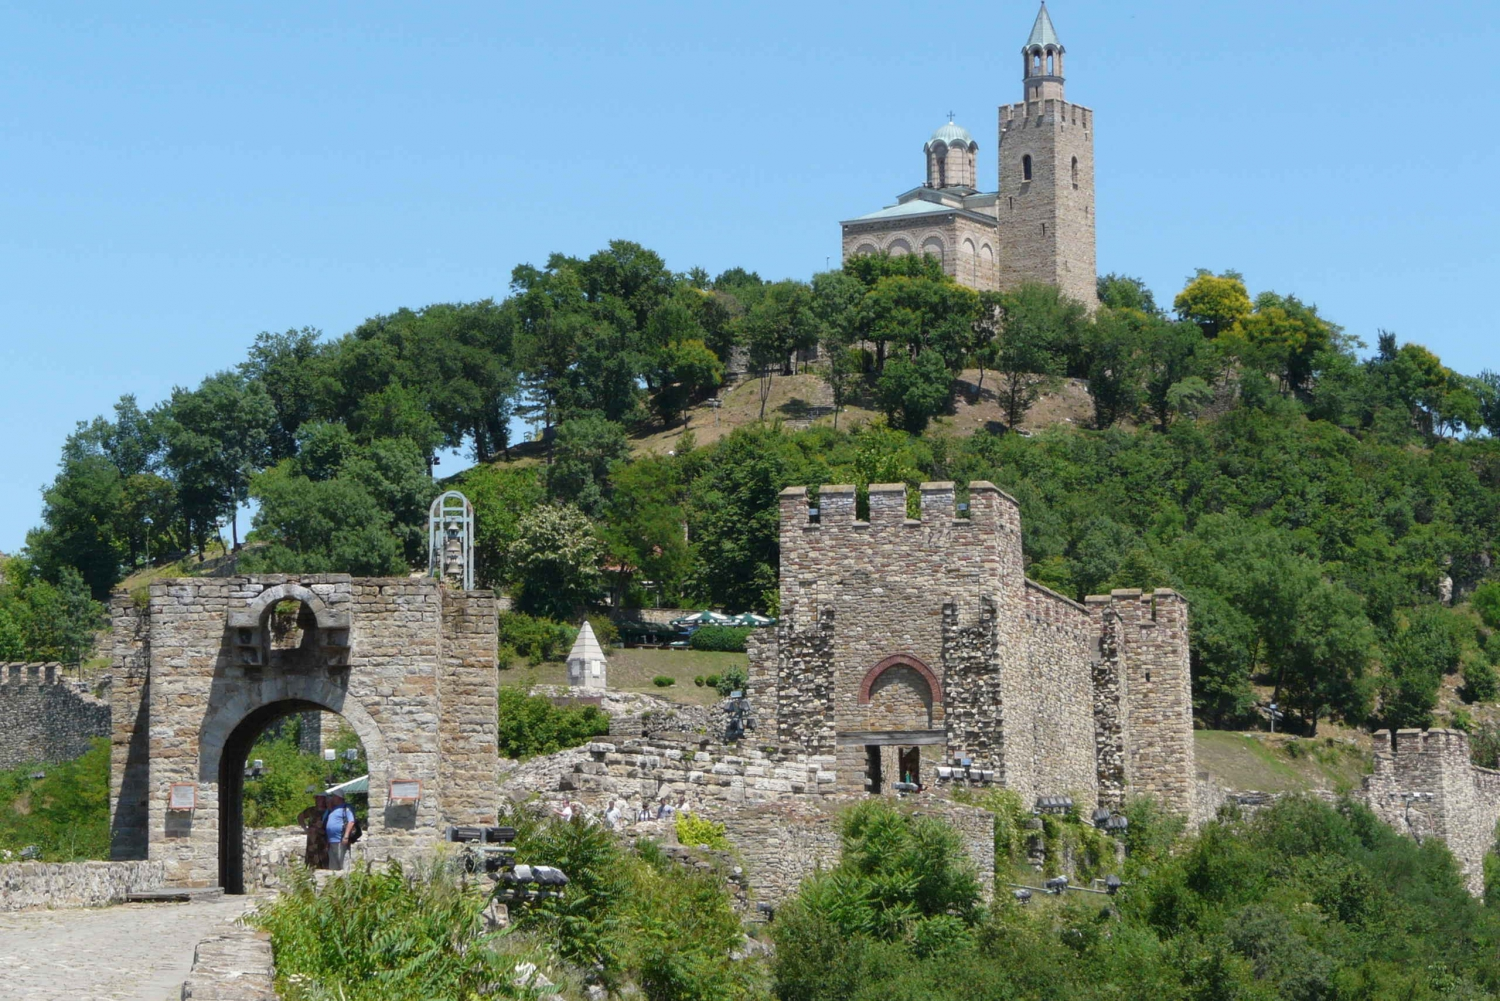 Veliko Tarnovo, Arbanasi & Shipka Memorial Church Tour